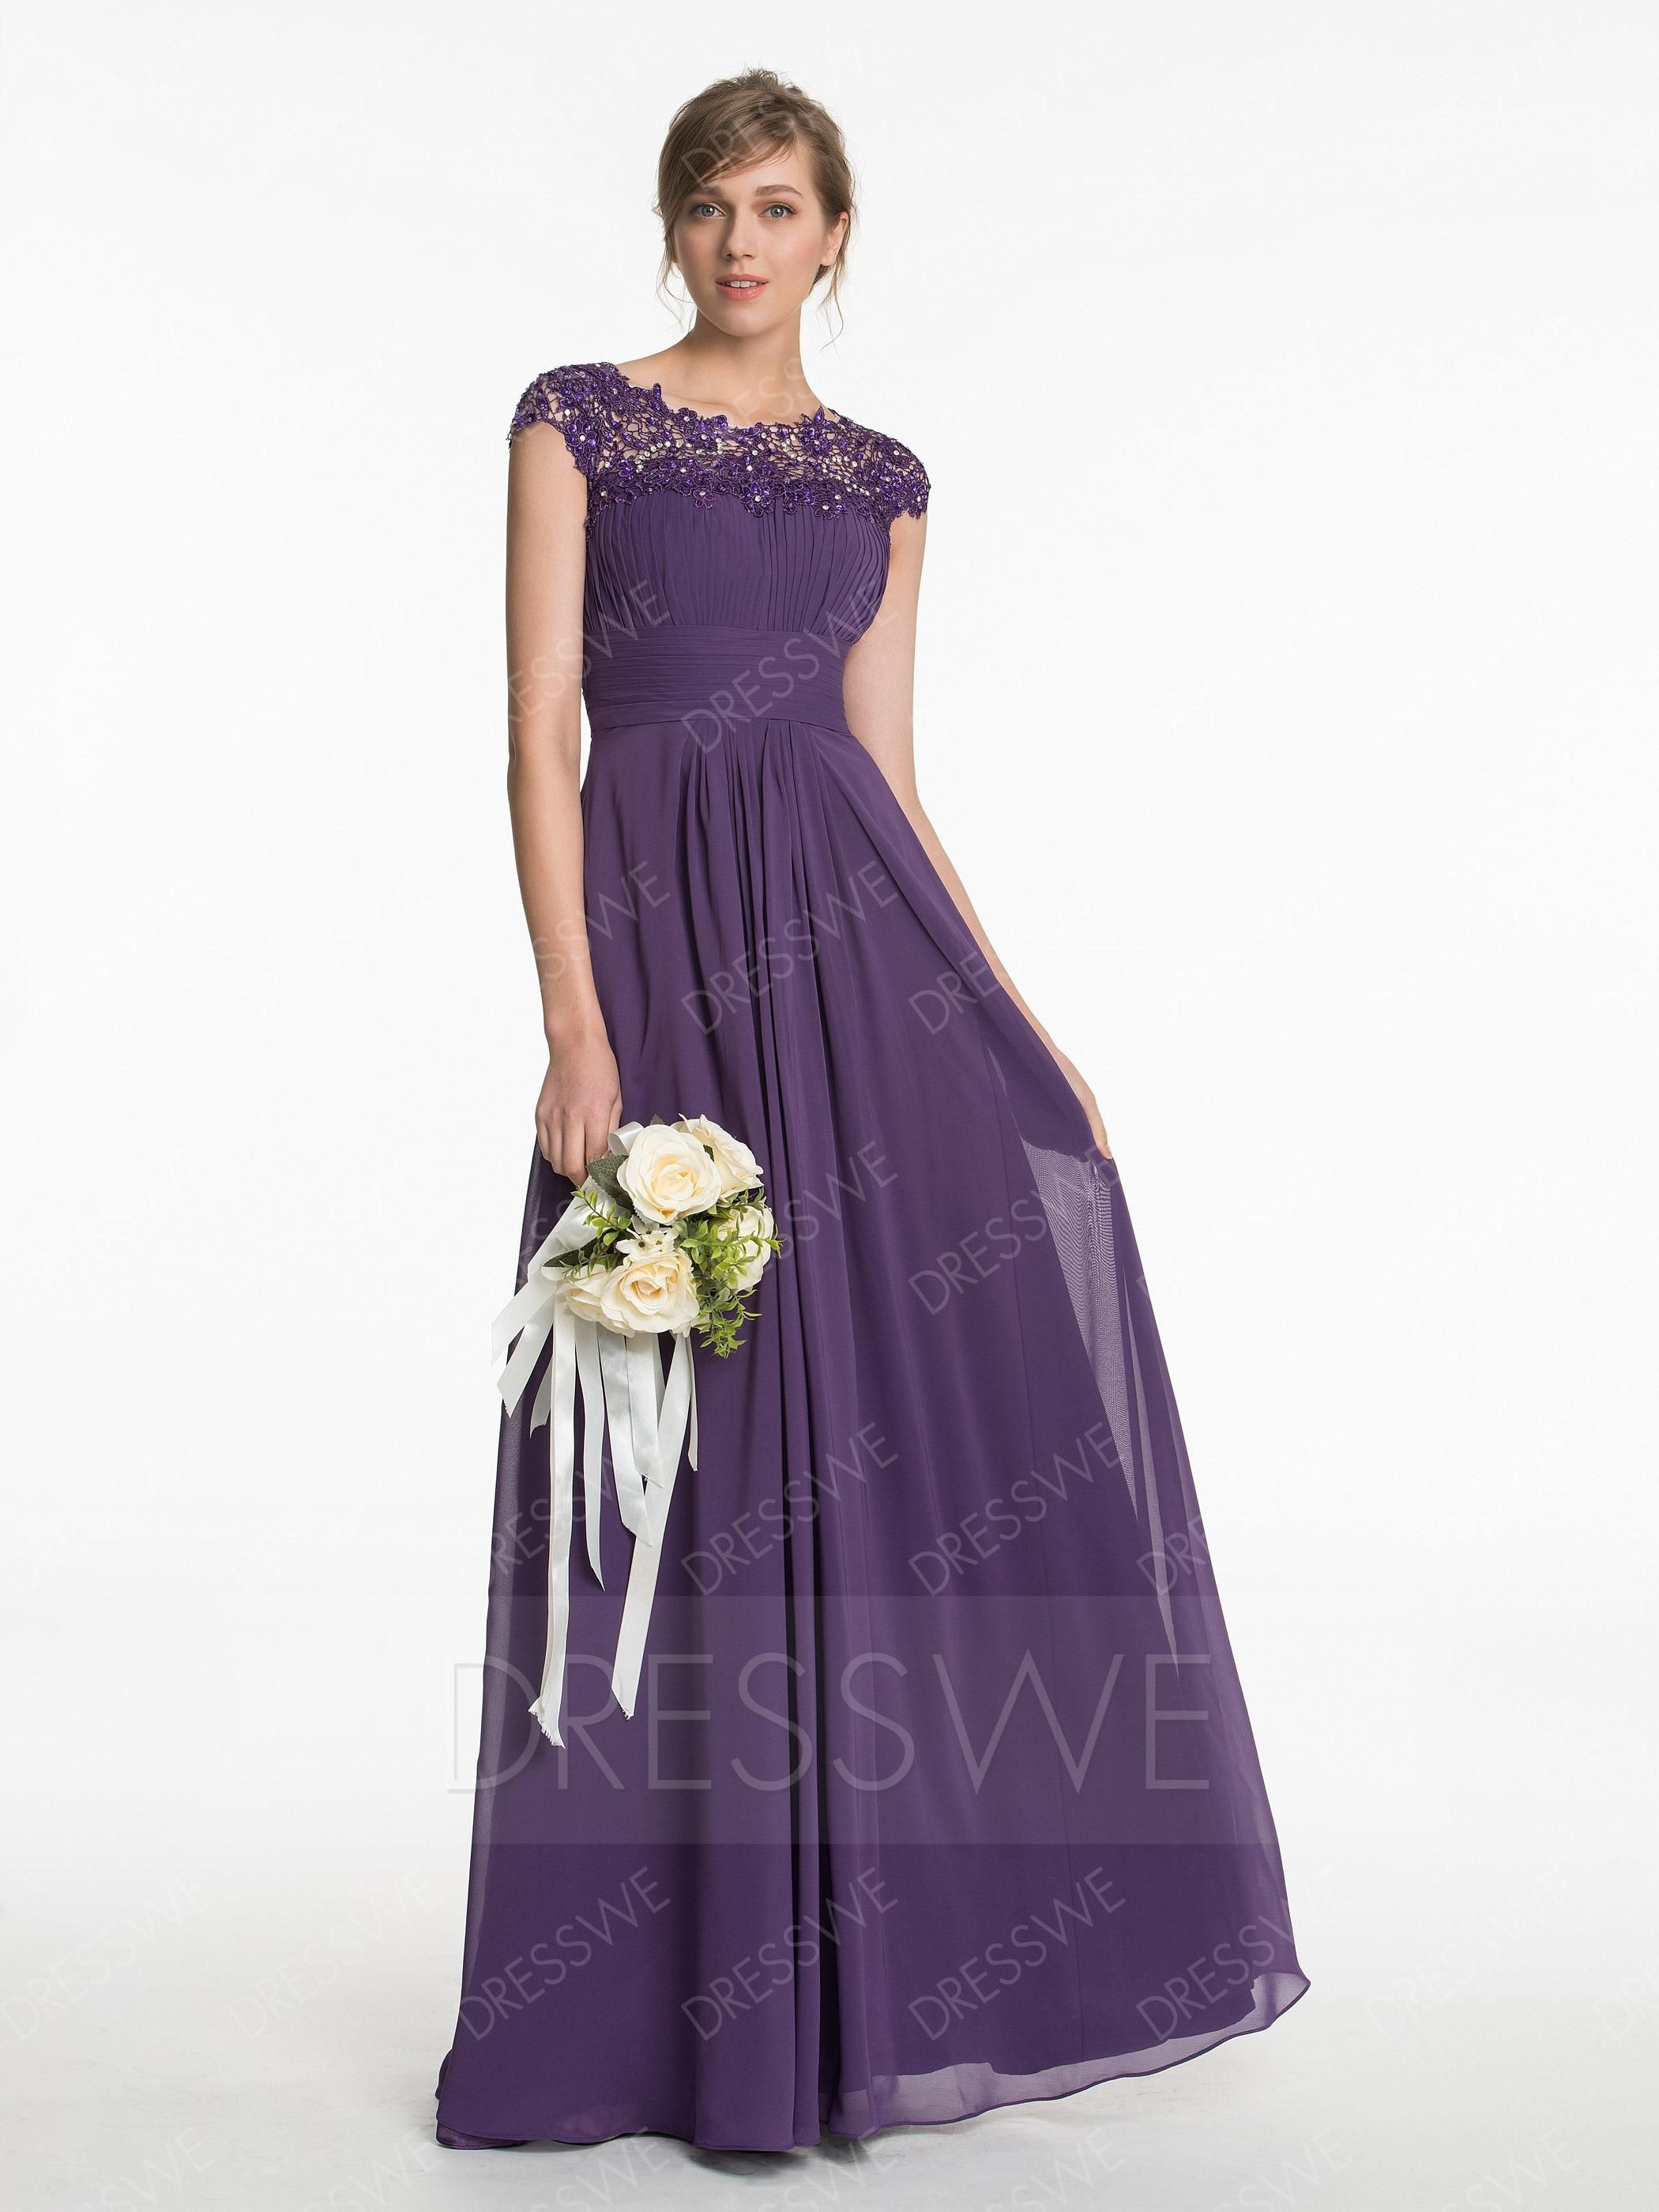 DressWe - DressWe Amazing Scoop Neck Lace A-Line Floor-Length ...